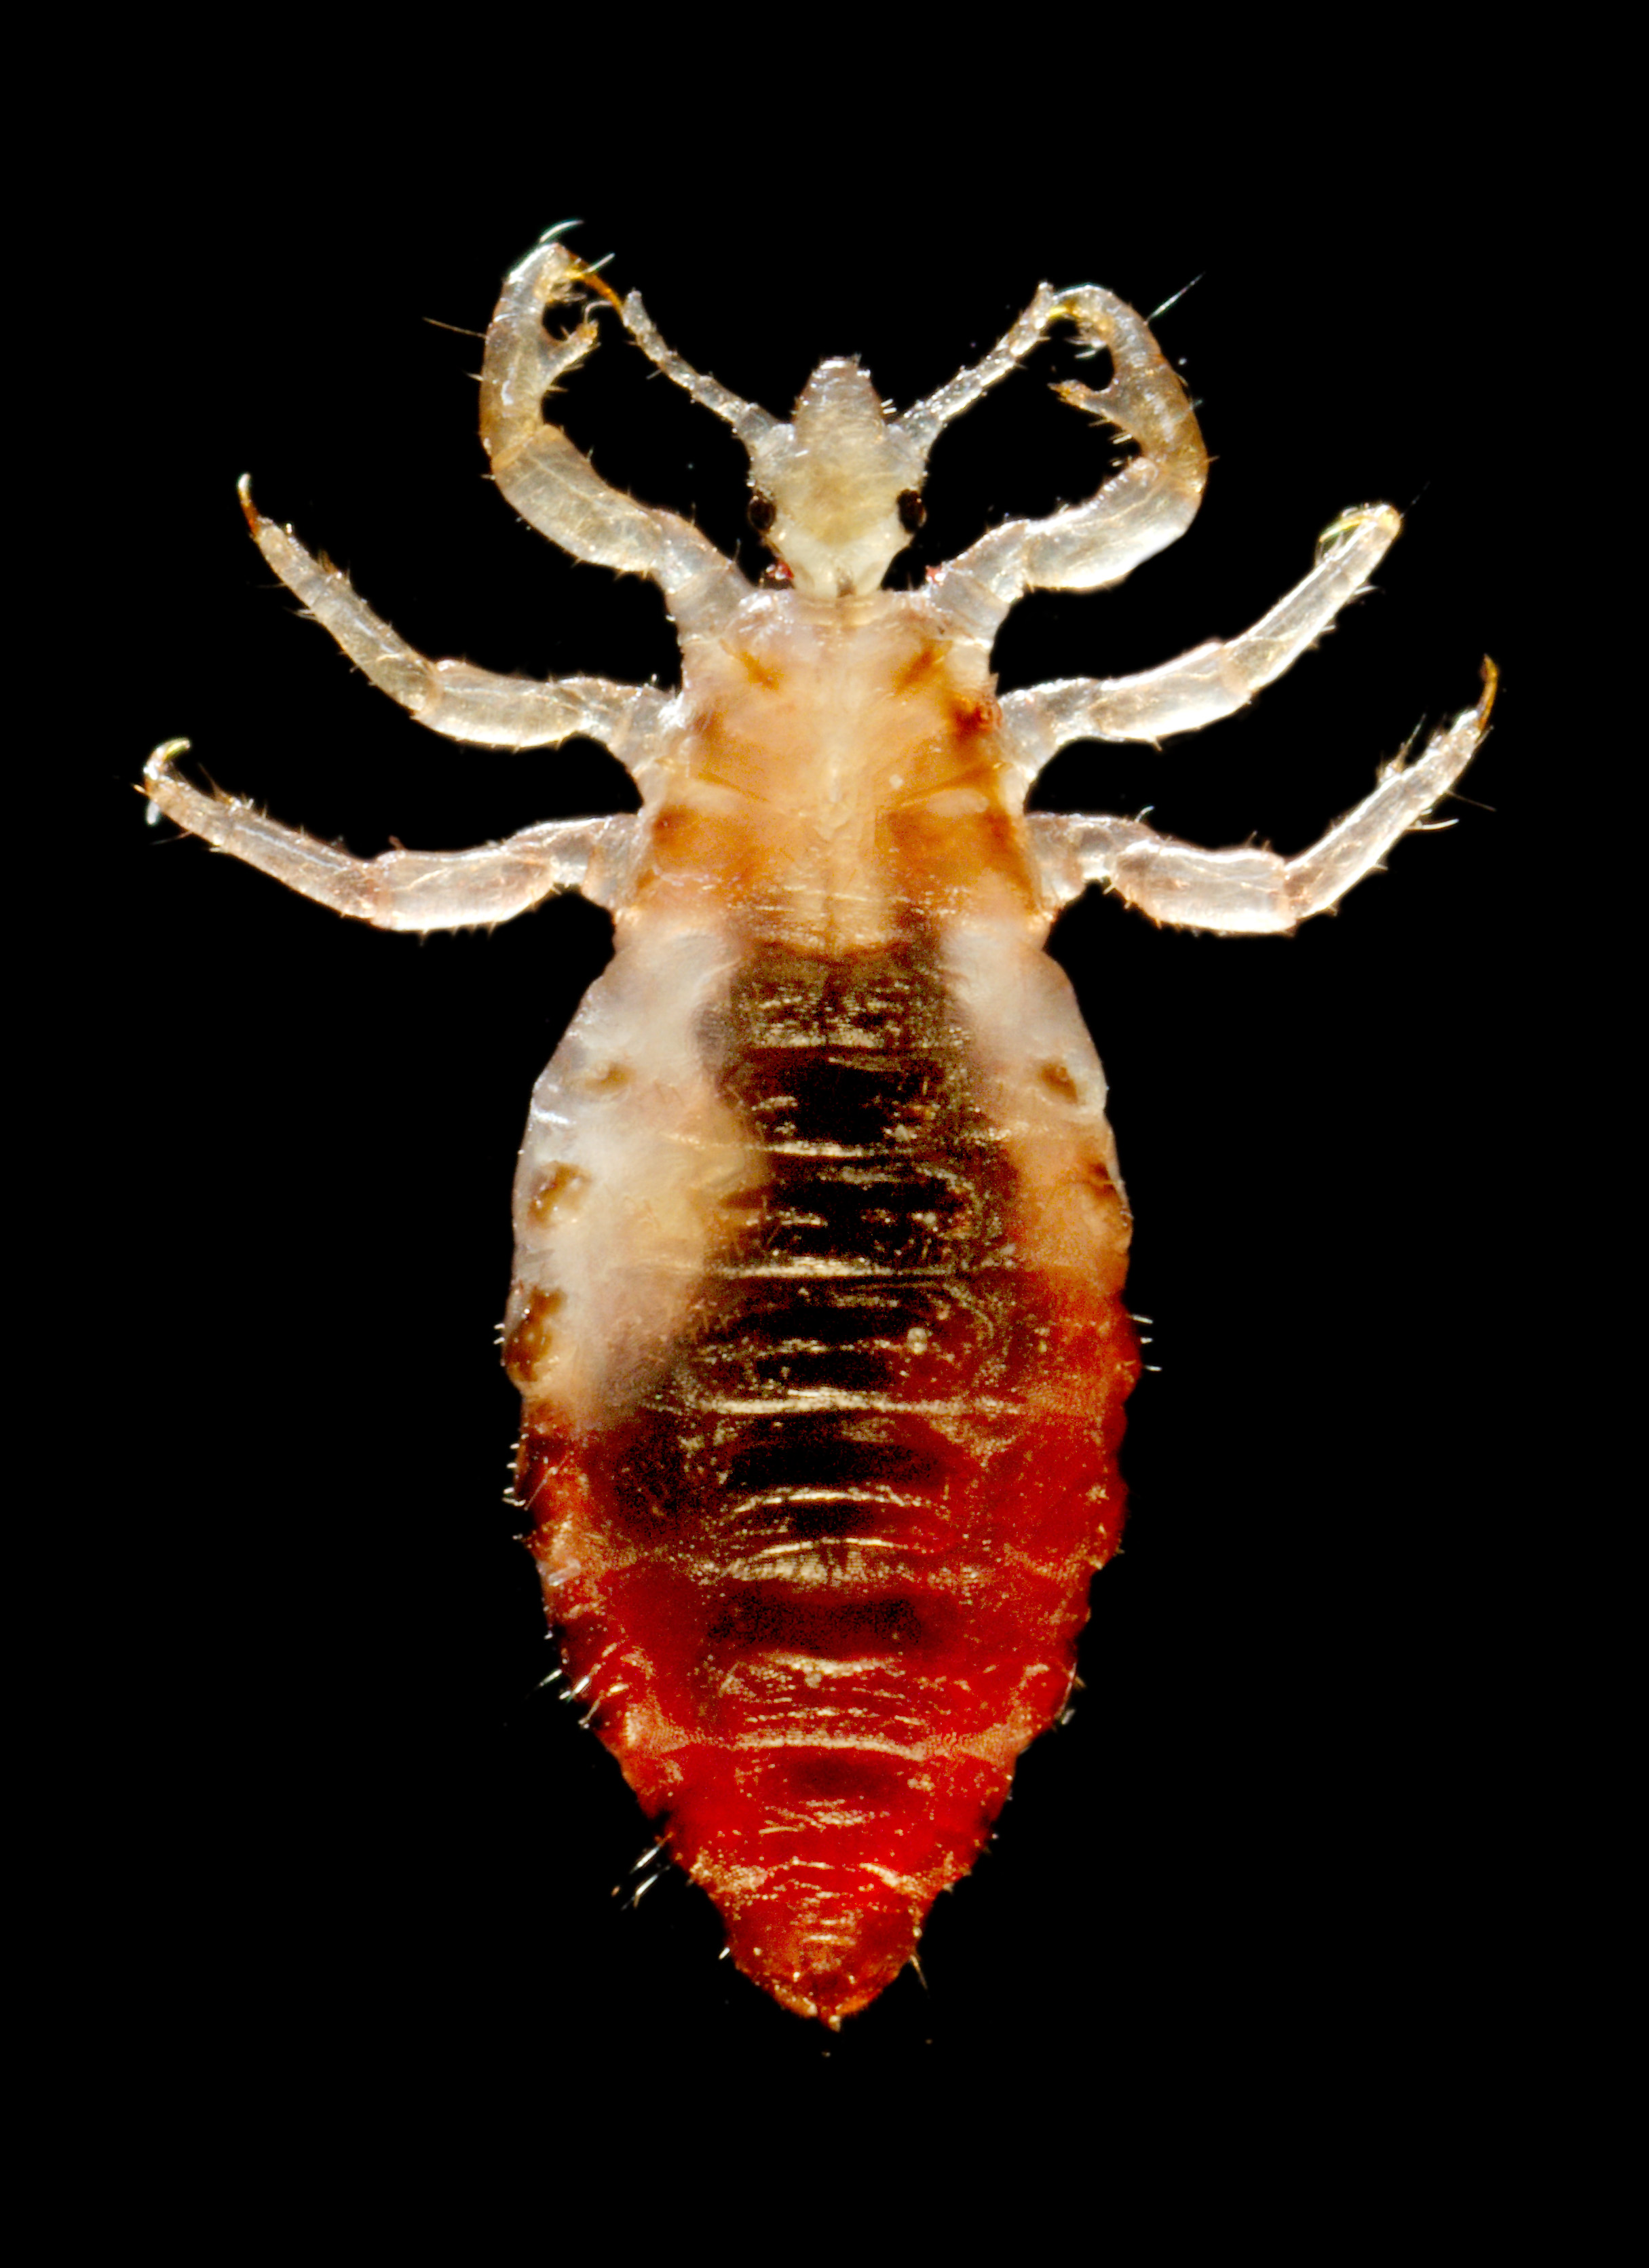 Close up of a louse, positioned as if for scientific examination on a slide